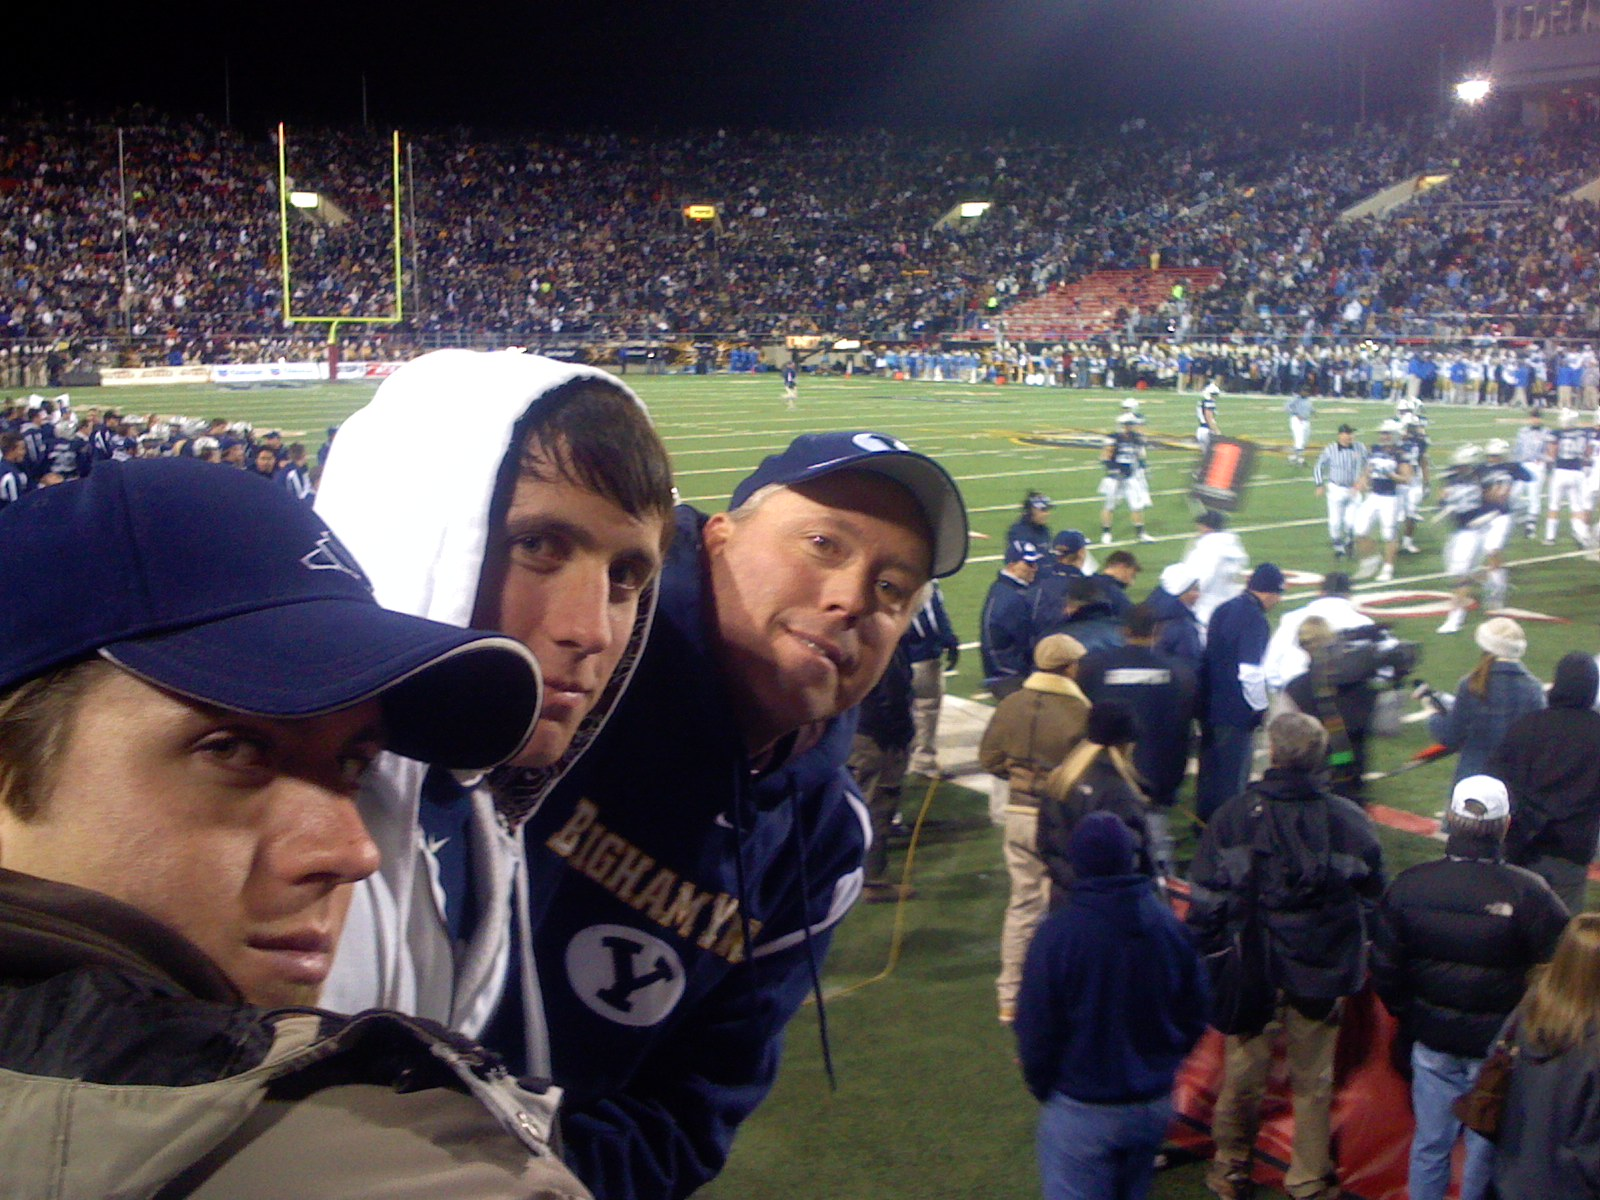 Las Vegas Bowl